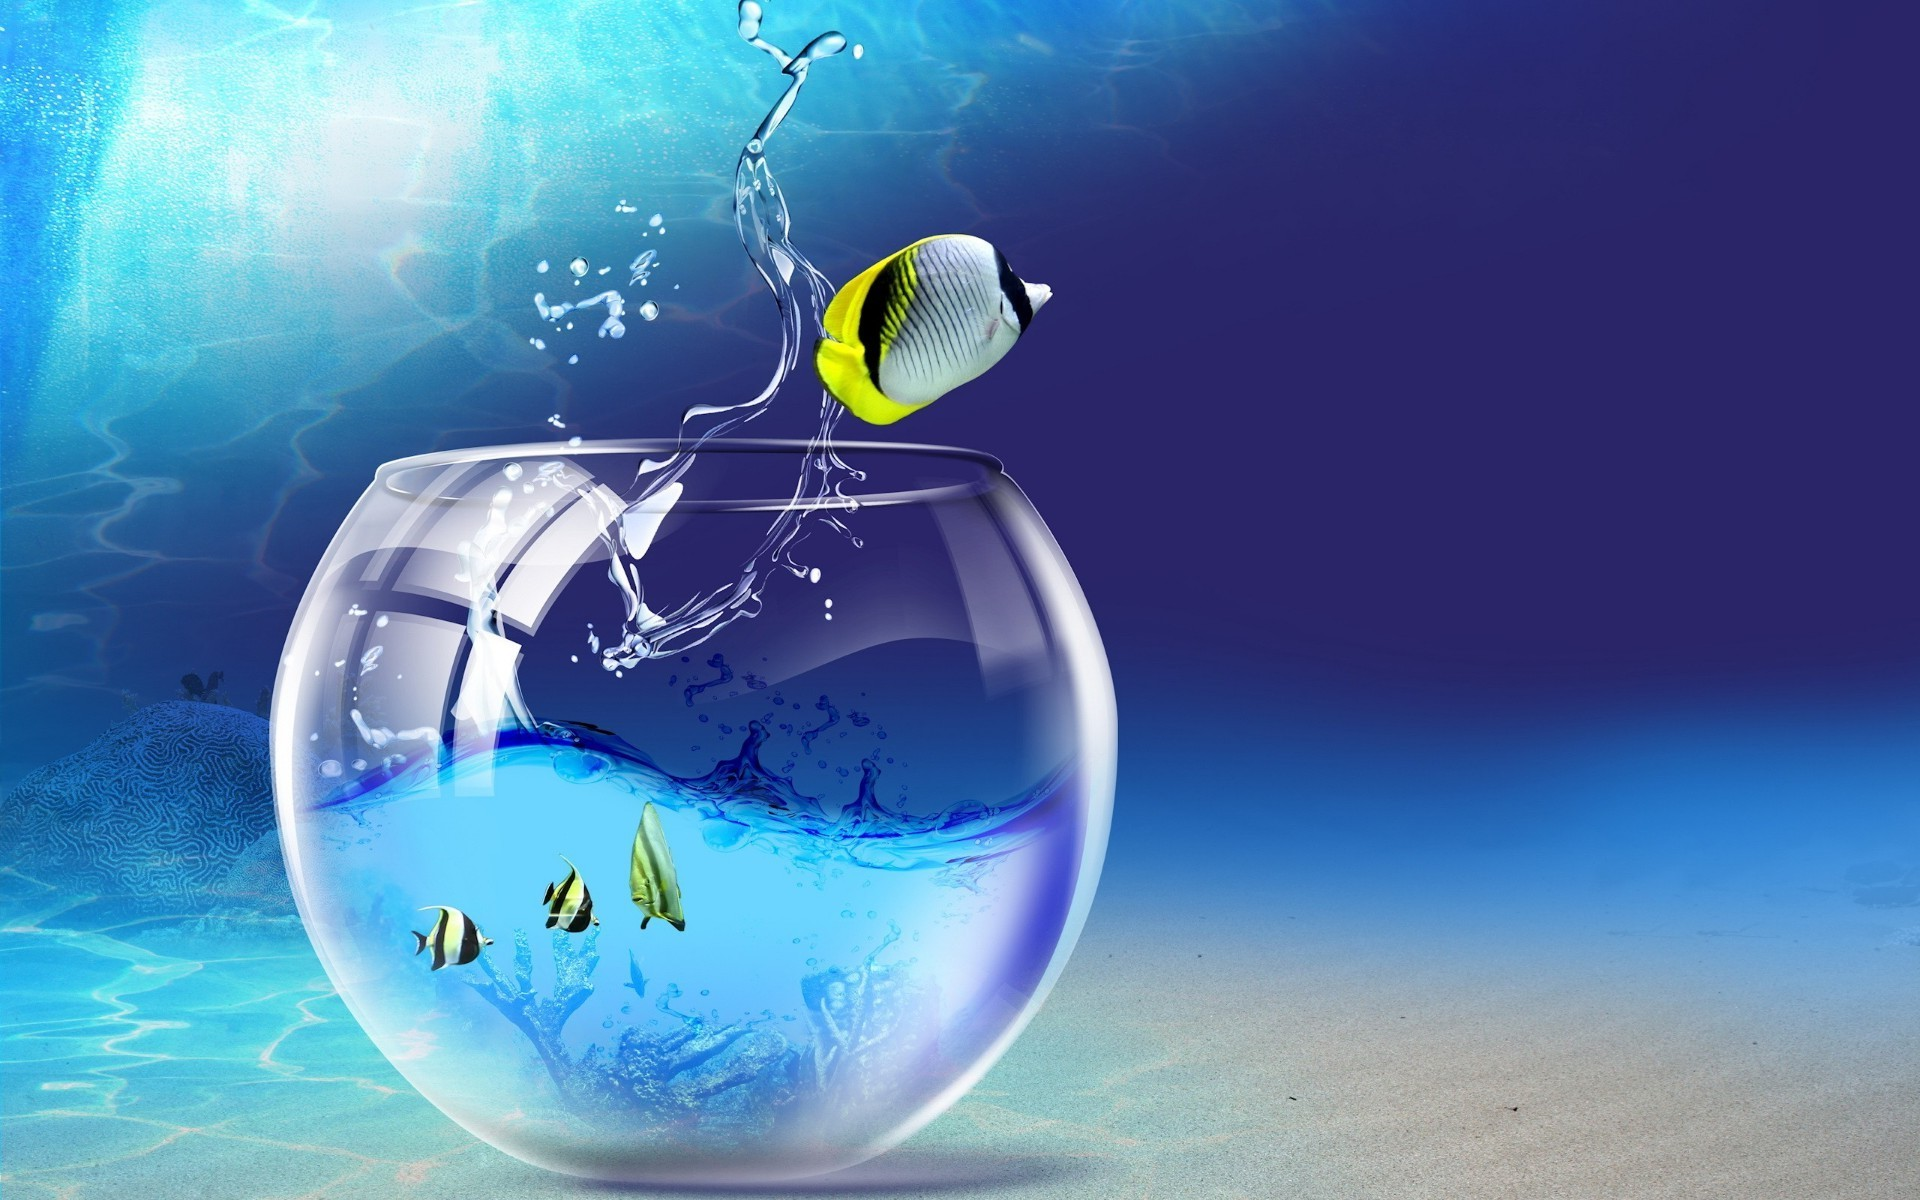 creative ball-shaped underwater moon water sphere travel